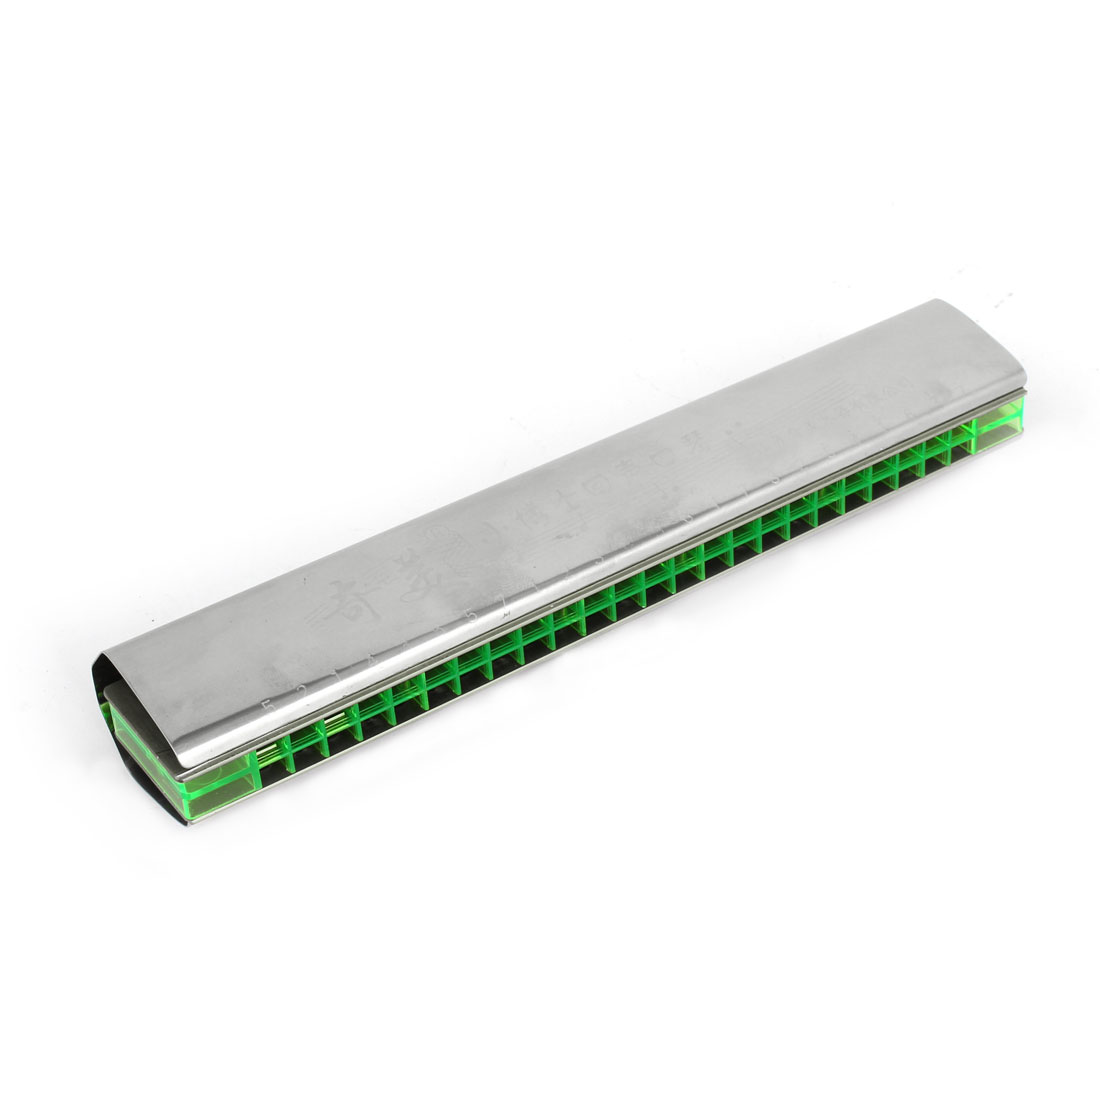 Silver Tone Green Dual Row 48 Holes Metal Frame Harmonica Mouth Organ